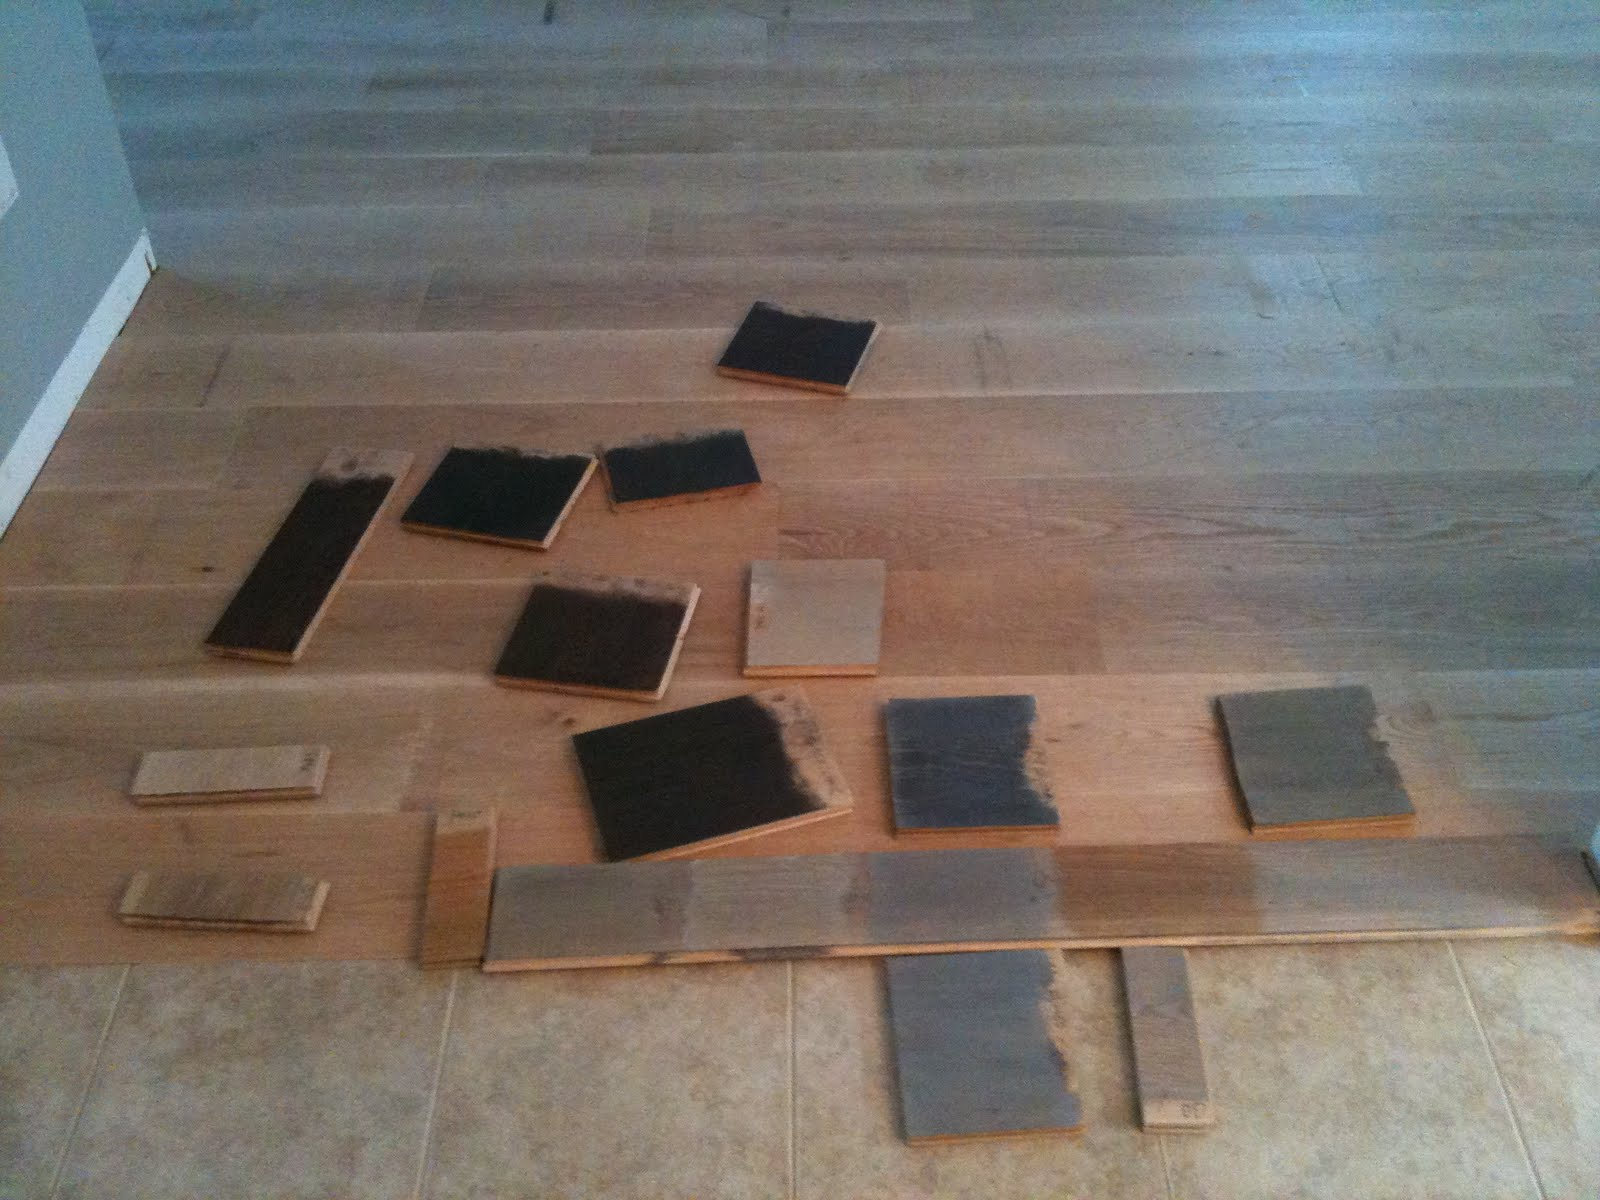 oak wood ash seattle how search contractor bulb stained gray and endearing img light amazing floor with disinfect lamp general resin renaissance chair flooring mats epoxy hardwood floors design shocking near satiating to